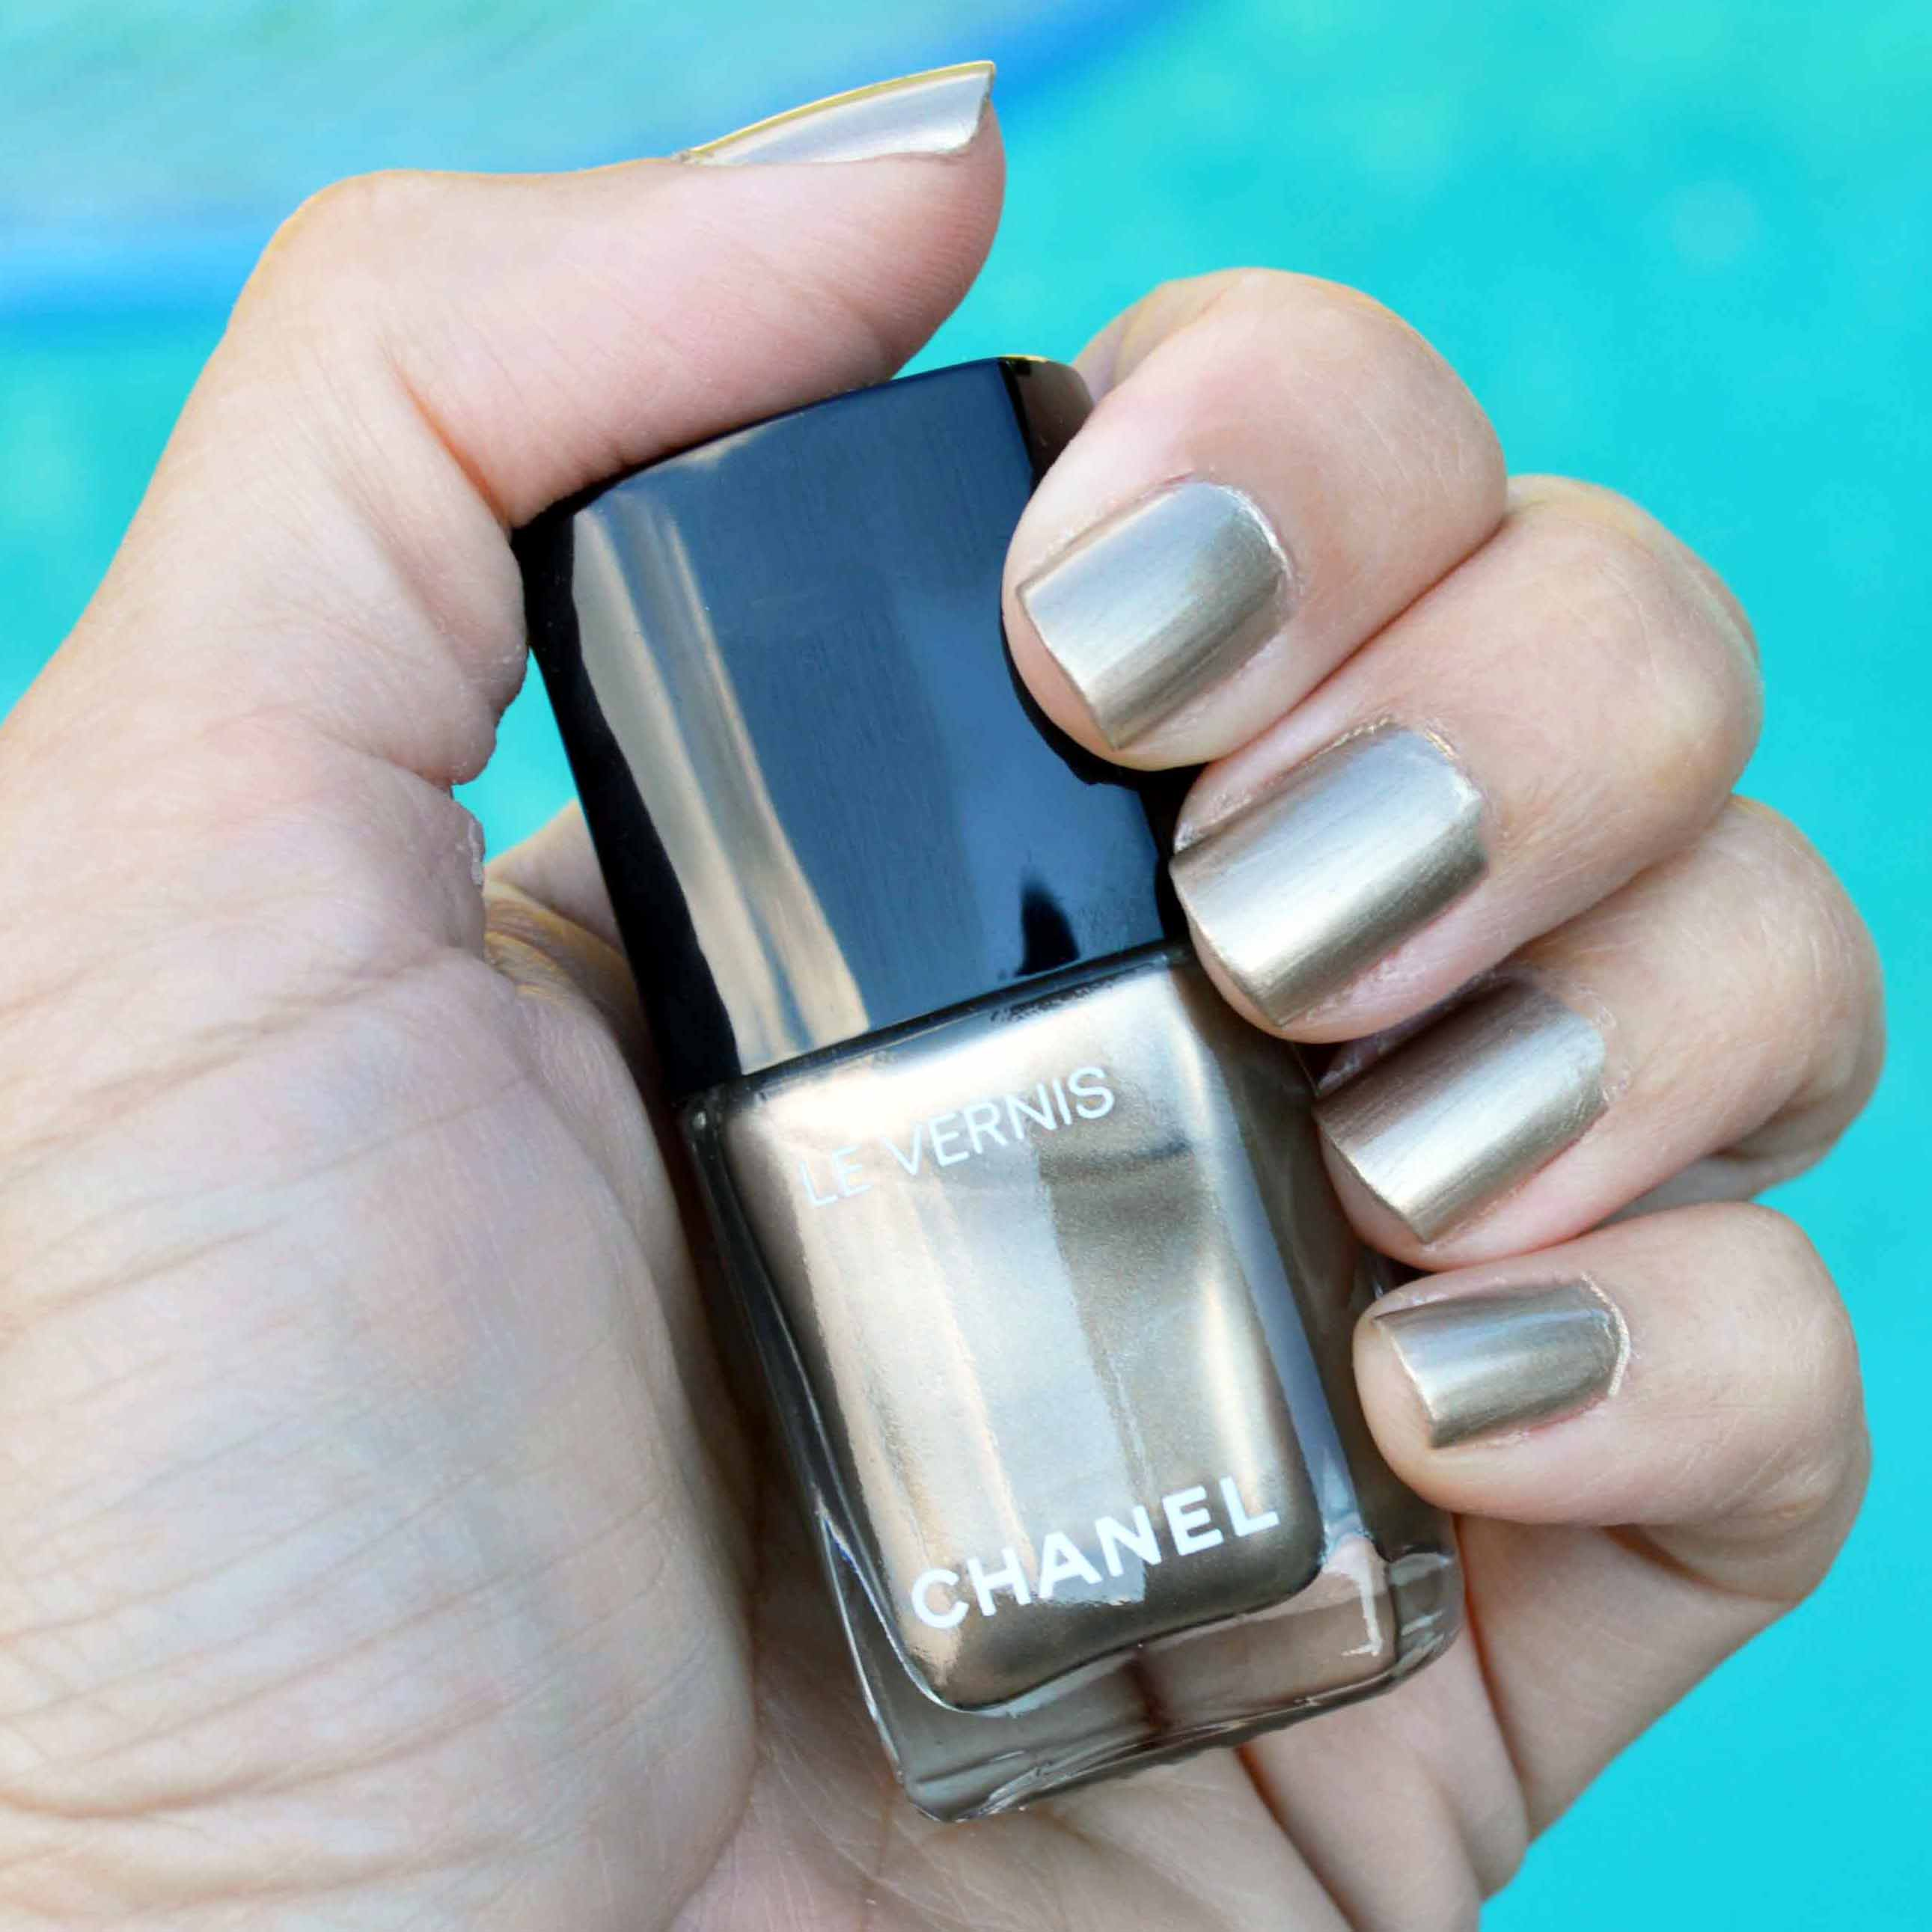 Chanel Canotier nail polish review | Bay Area Fashionista